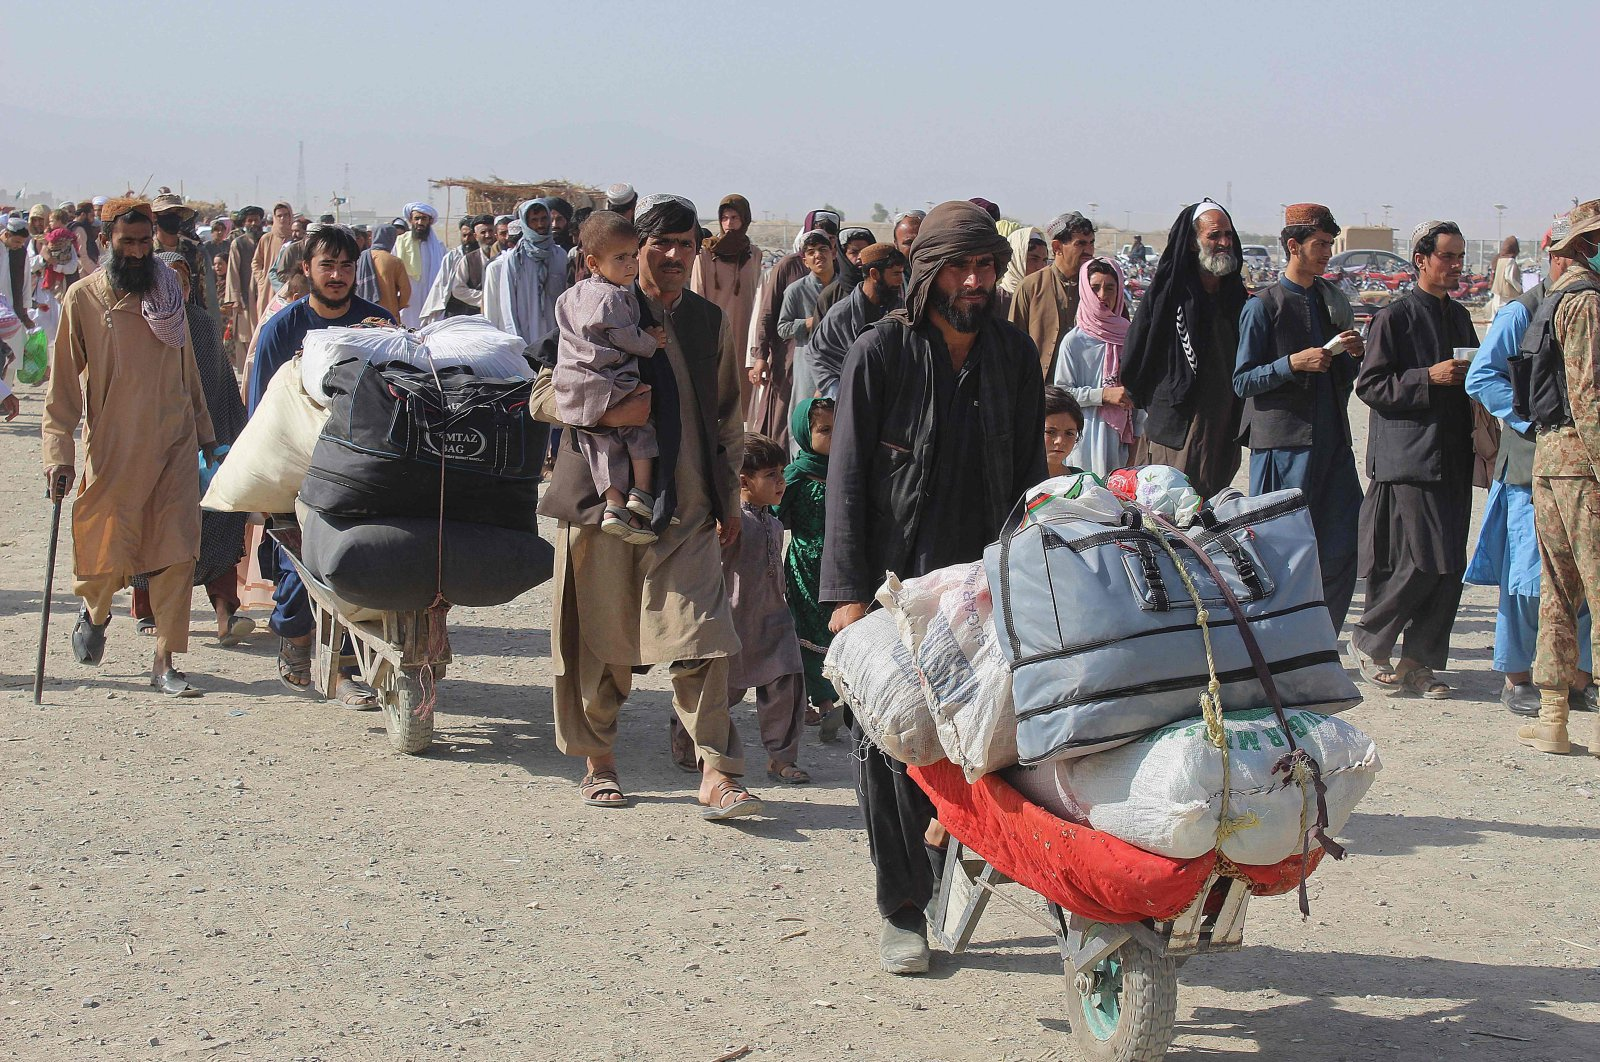 Afghan nationals arrive at the Pakistan-Afghanistan border crossing point in Chaman, Pakistan, Aug. 20, 2021. (AFP Photo)